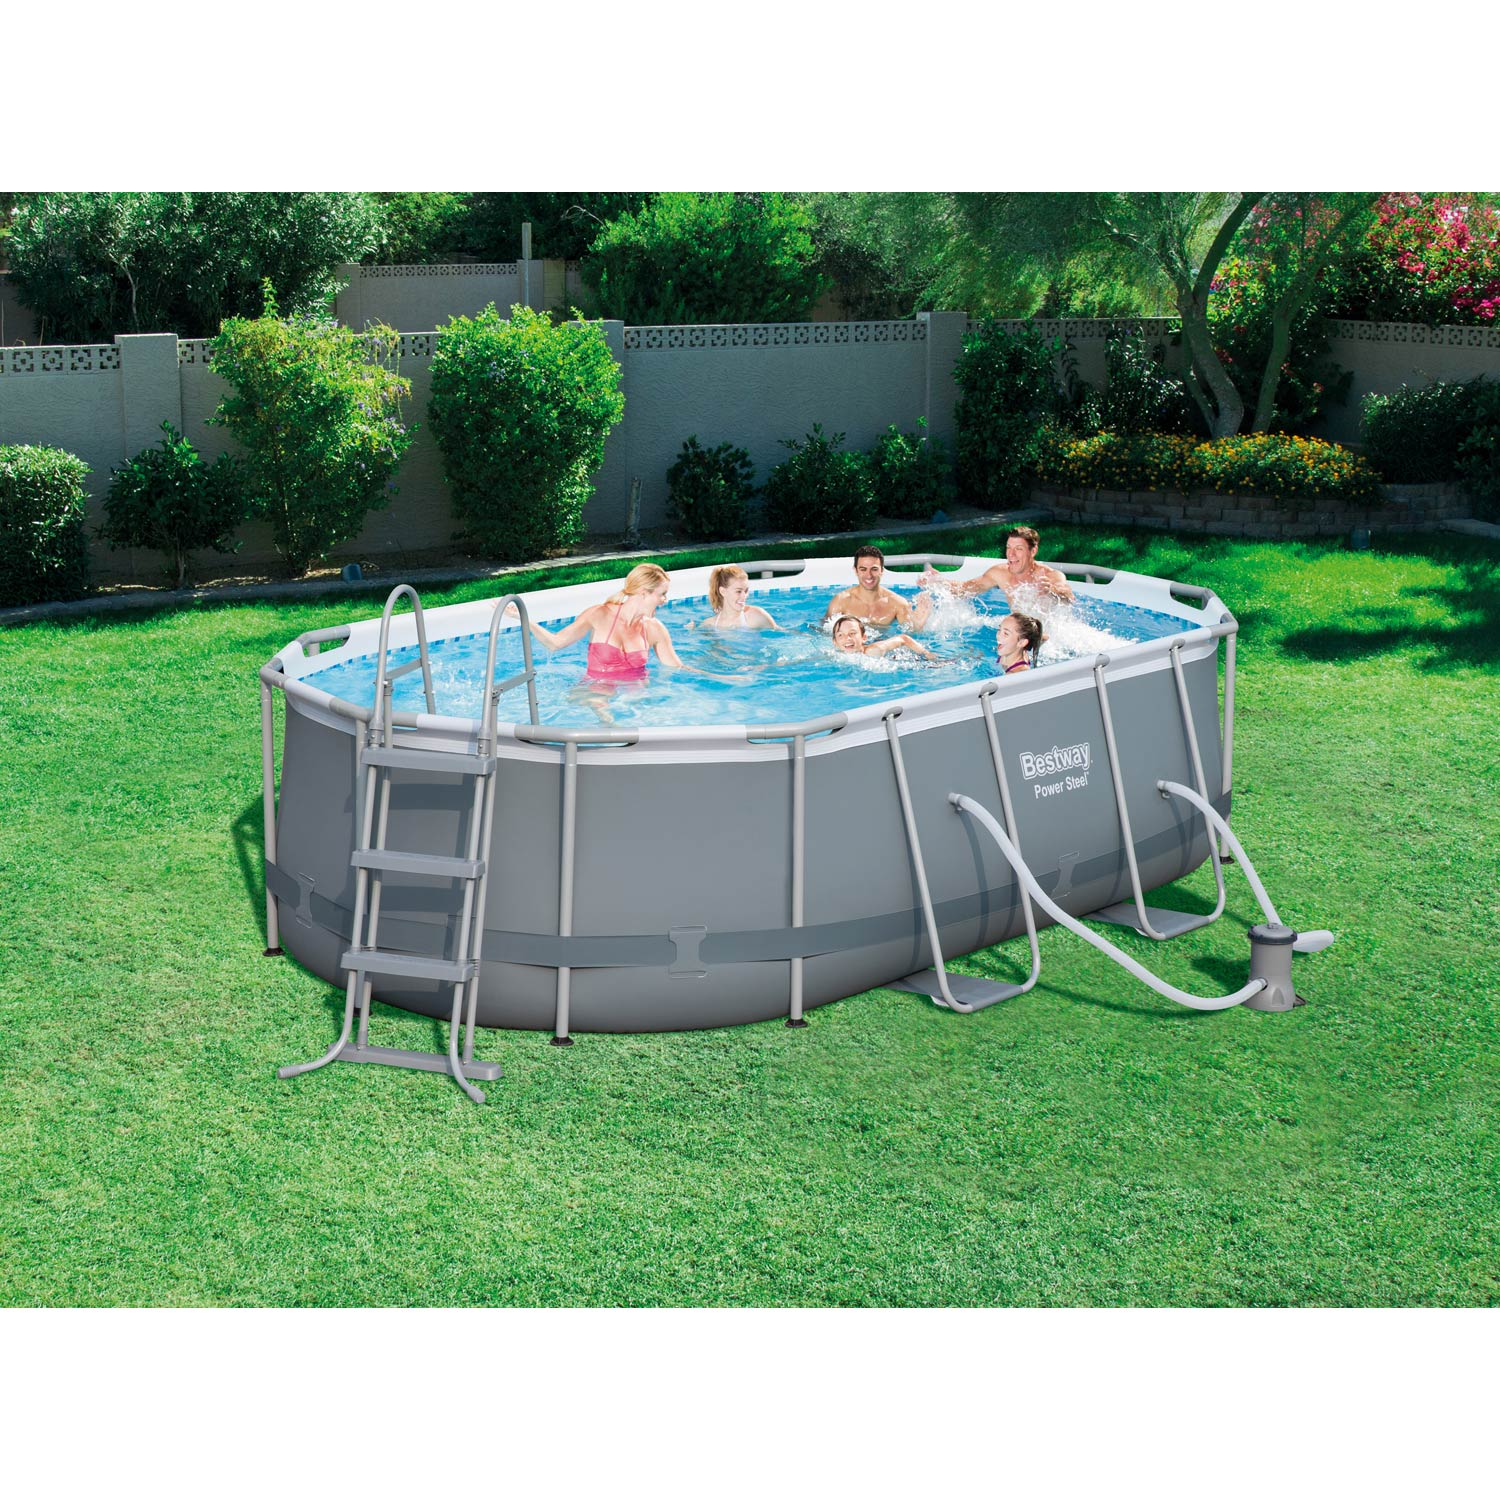 Piscine hors sol autoportante tubulaire bestway l x for Piscine hors sol reglementation